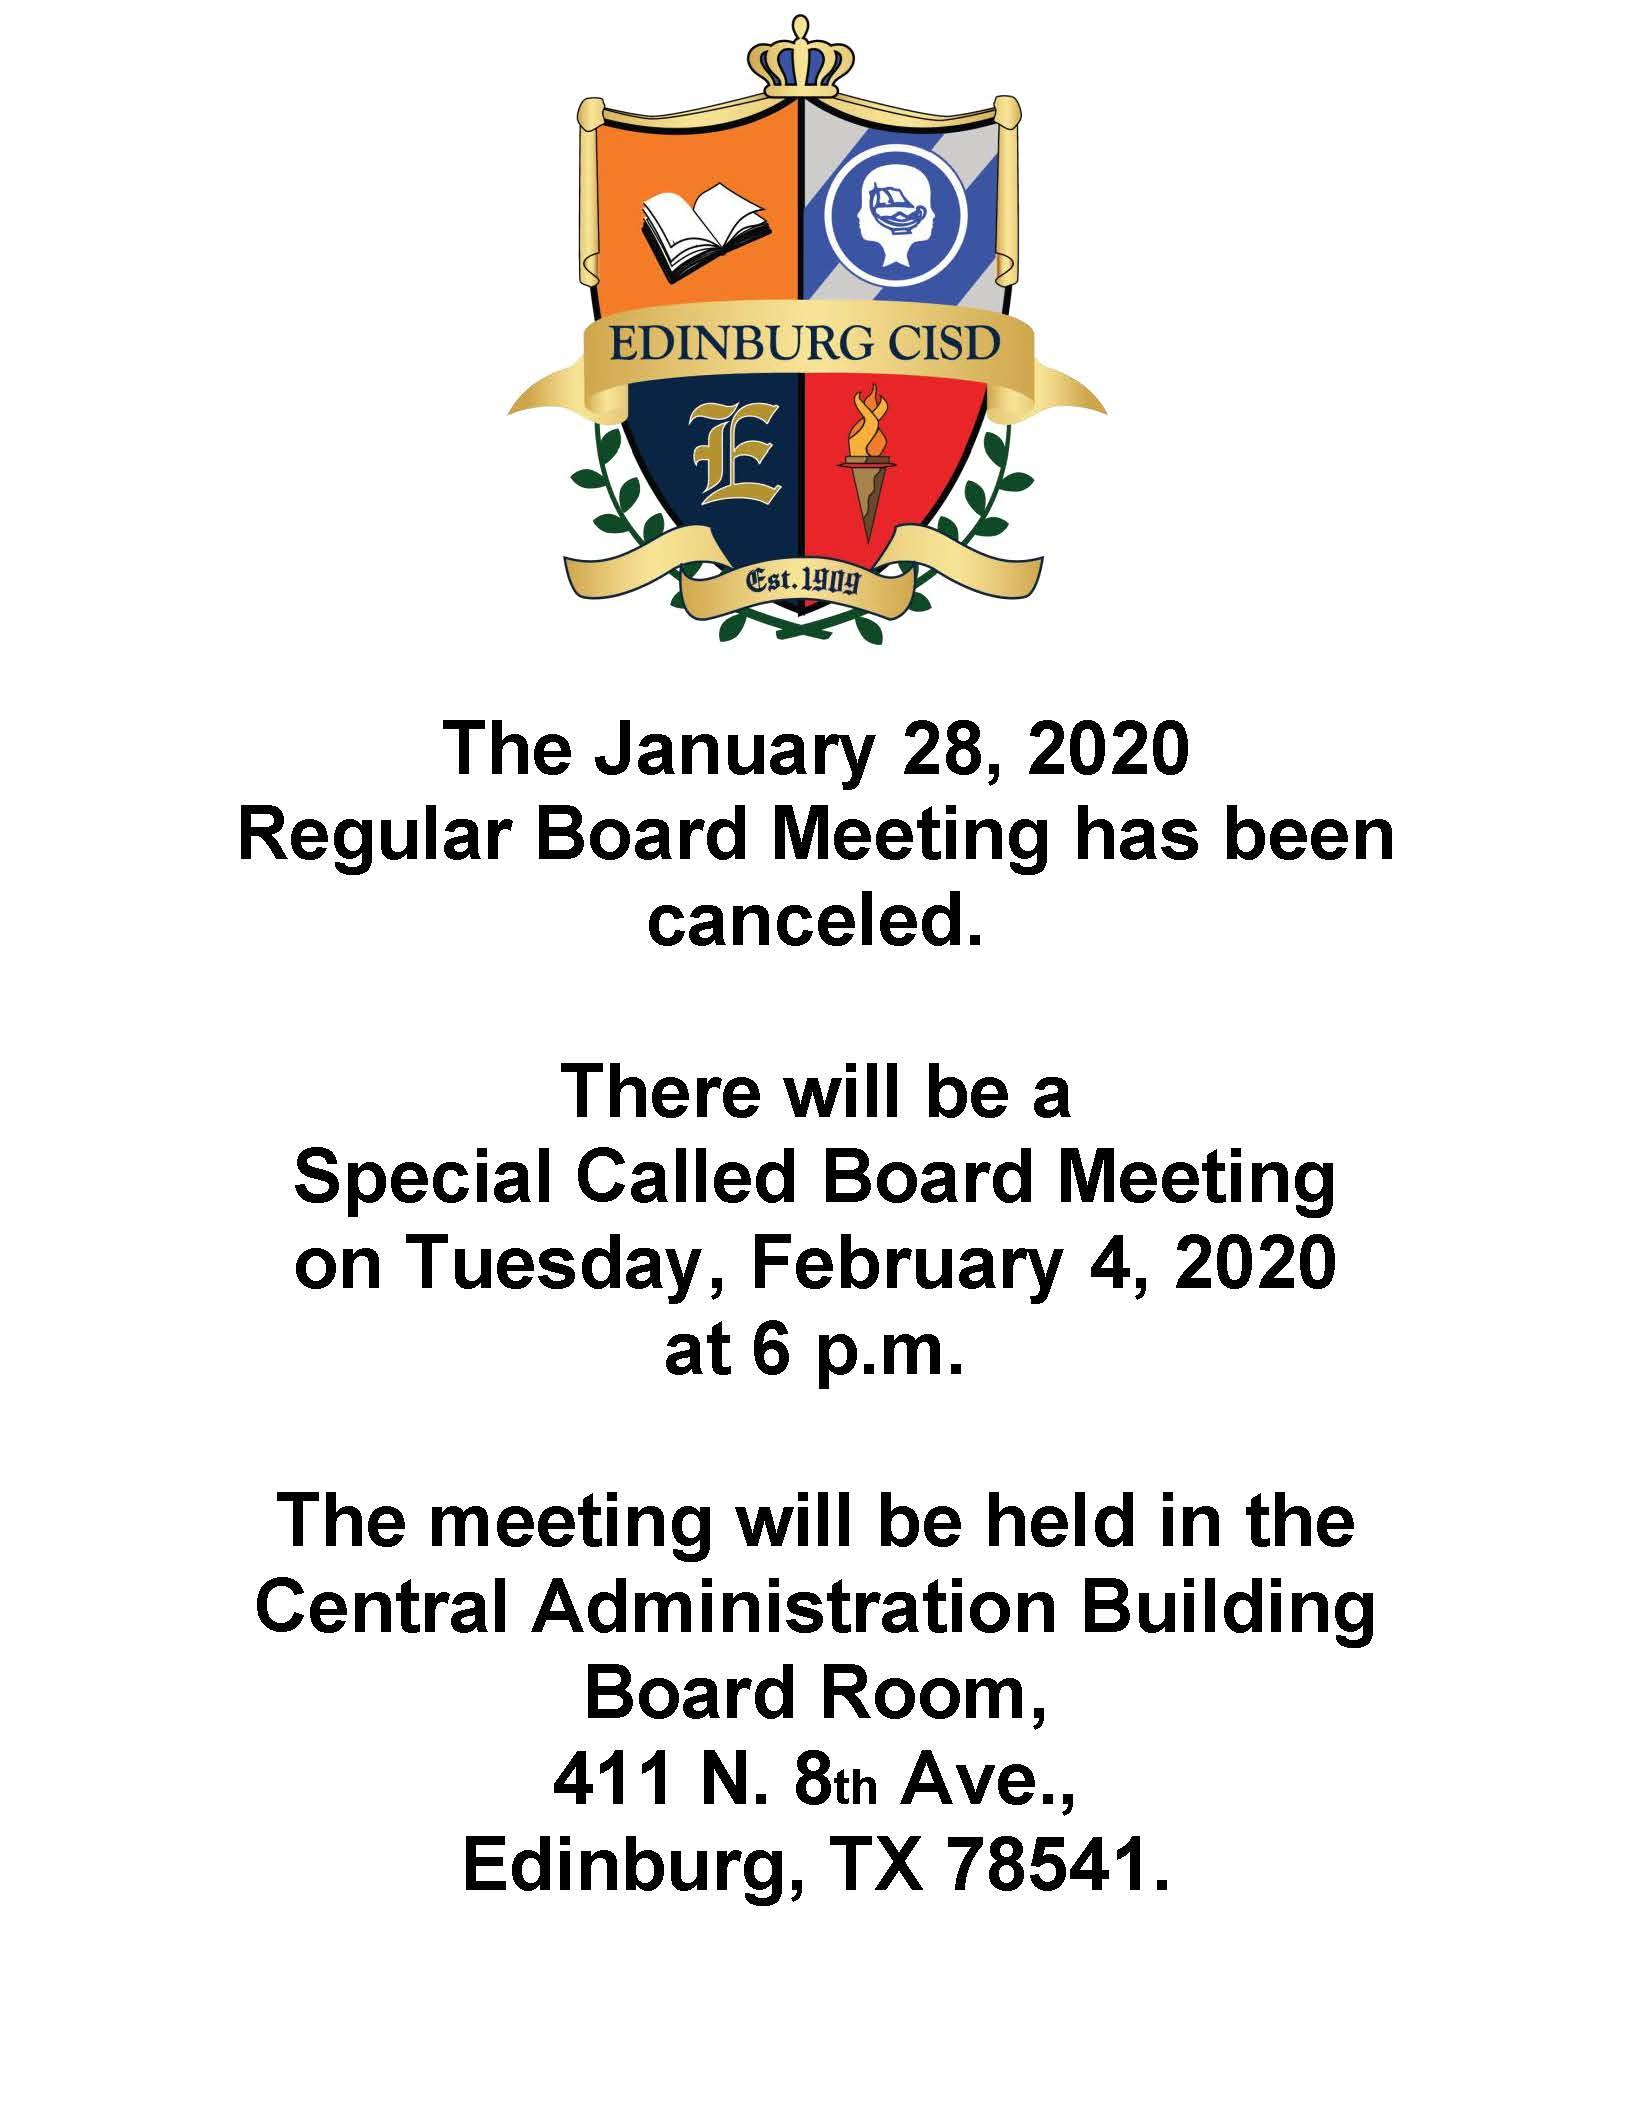 The January 28, 2020 Regular Board Meeting has been canceled. There will be a Special Called Board Meeting on Tuesday, February 4, 2020 at 6 p.m. The meeting will be held in the Central Administration Building Board Room, 411 N. 8th Ave., Edinburg, TX 78541.